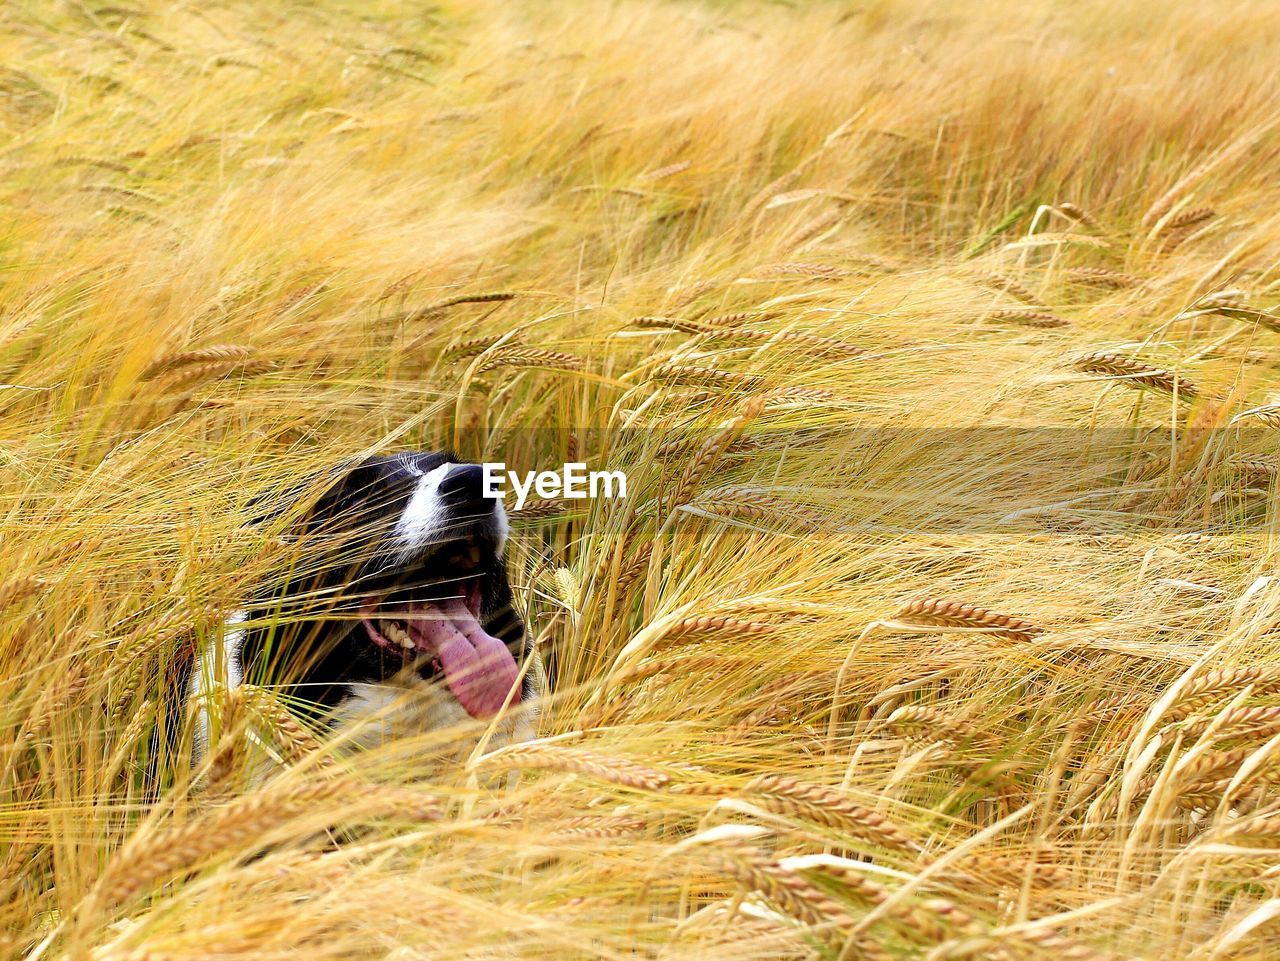 Border collie sticking out tongue on field